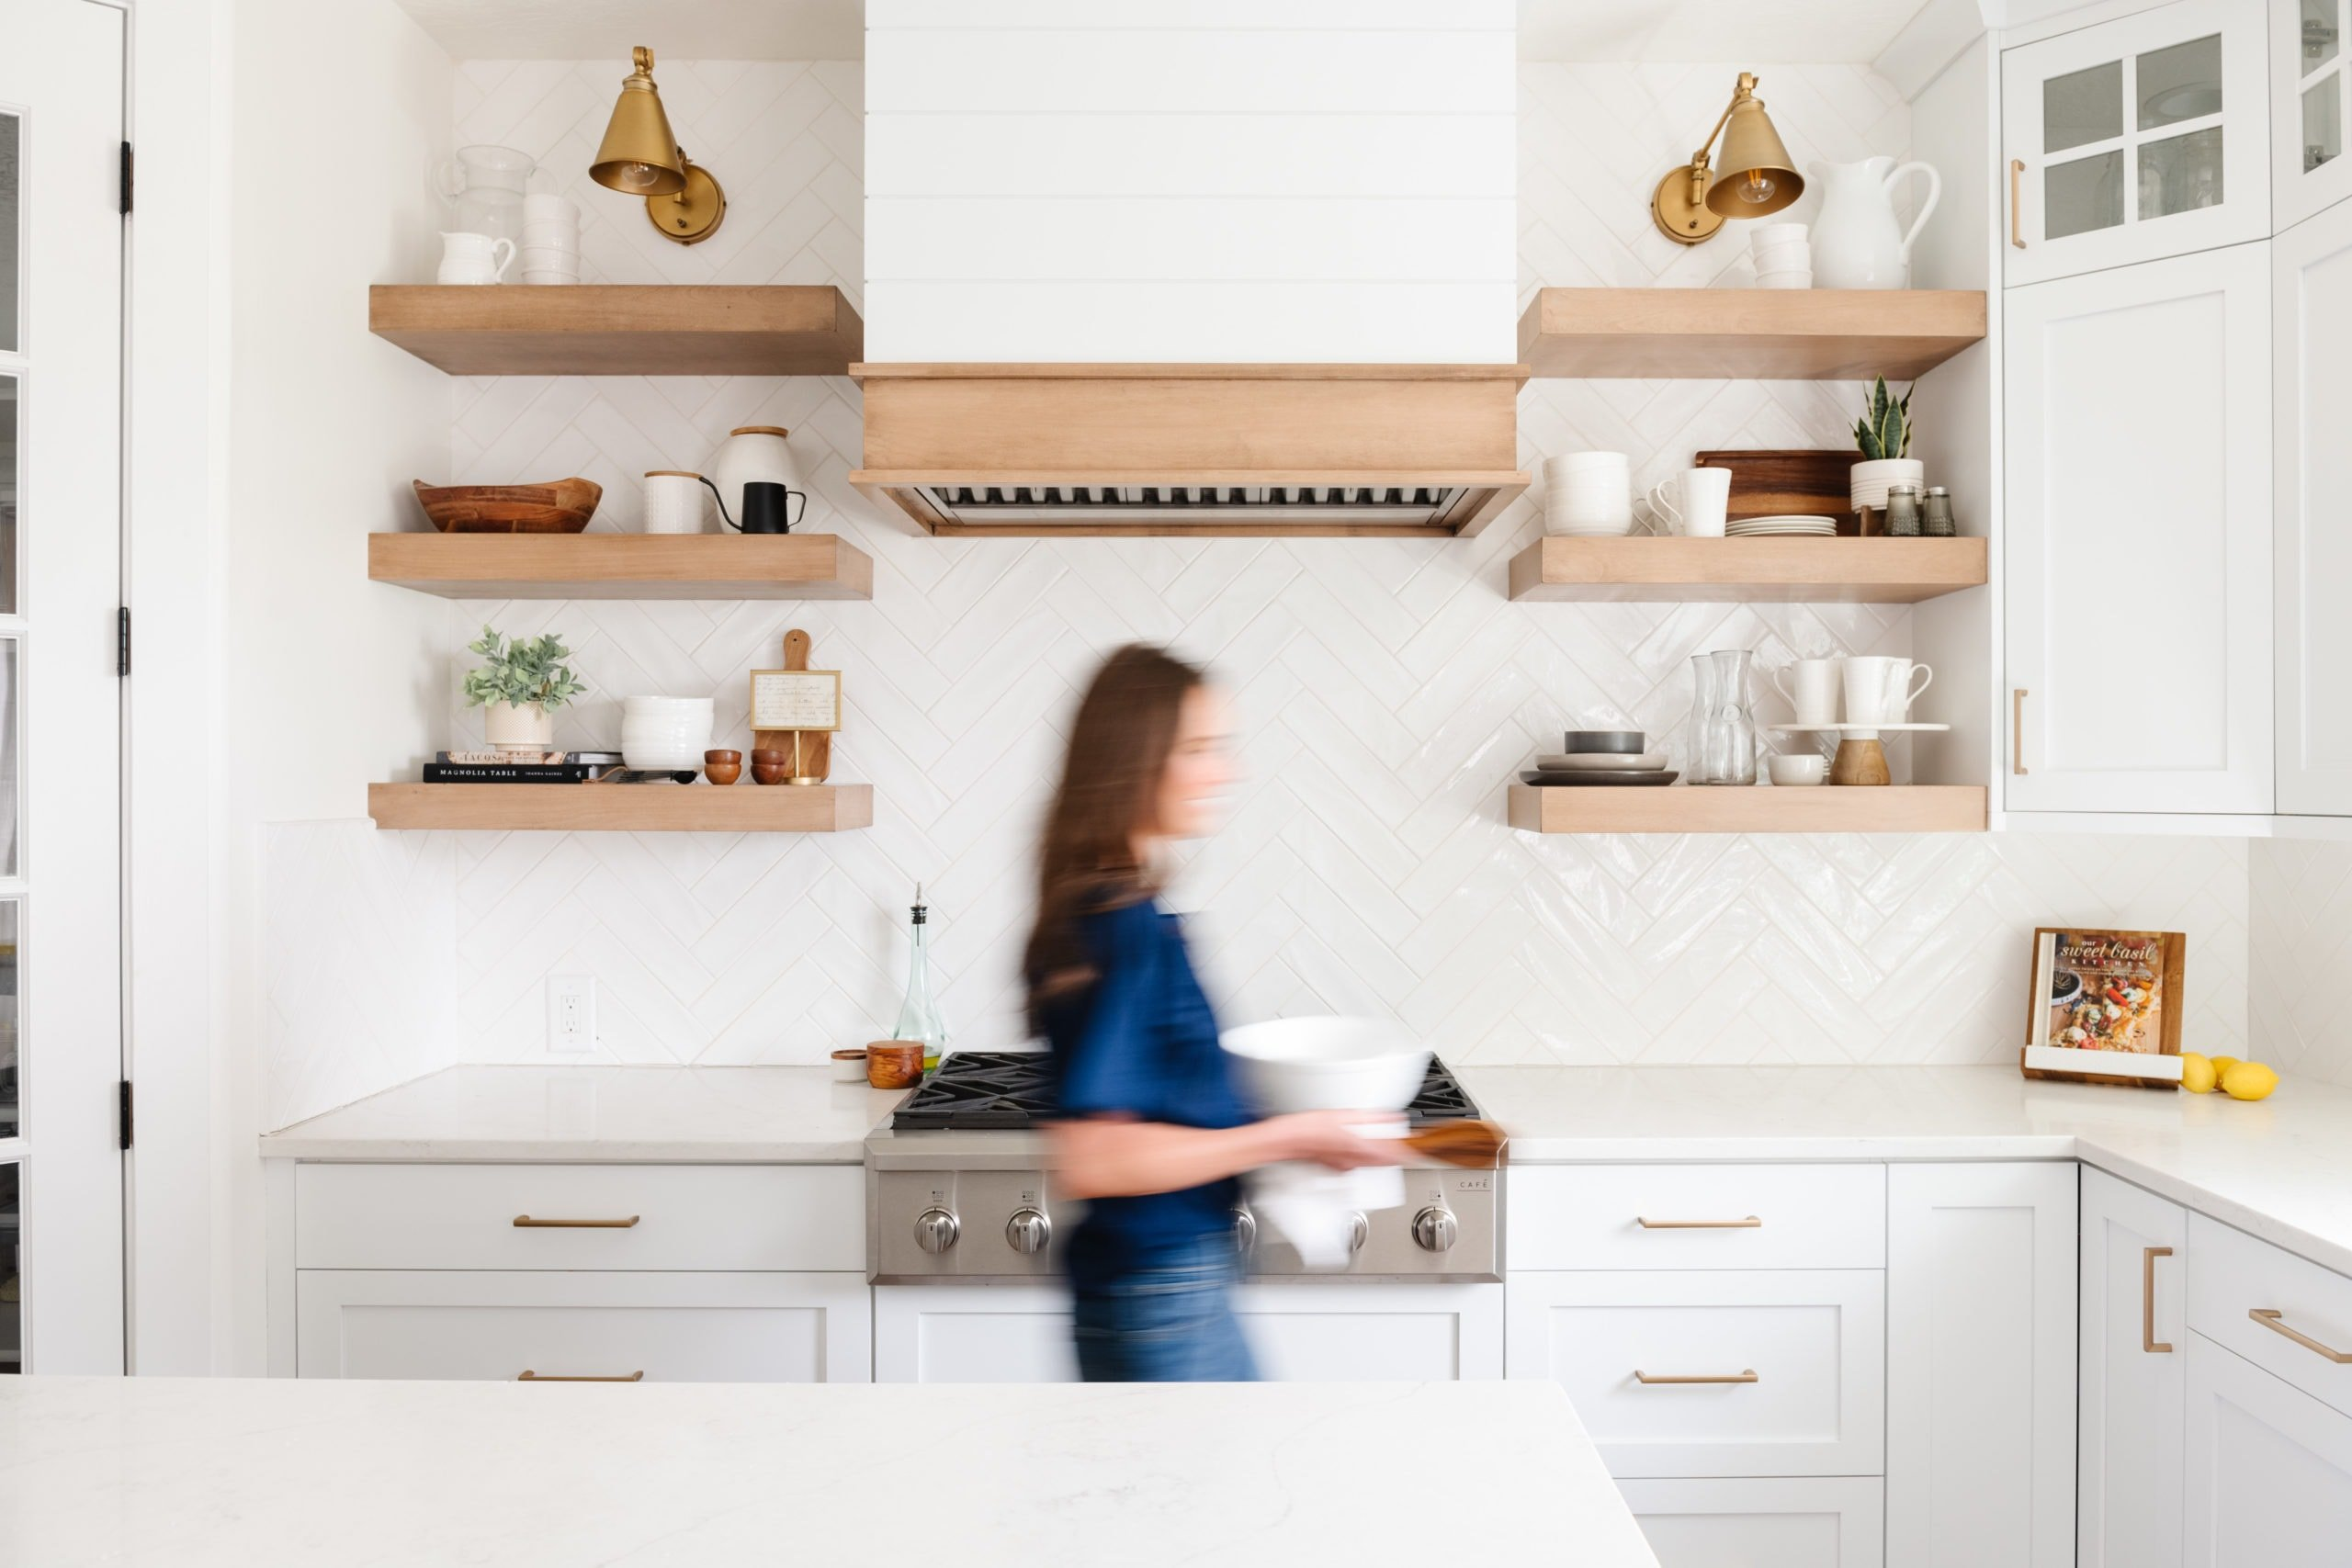 A photo of a woman blurry with movement in the kitchen.